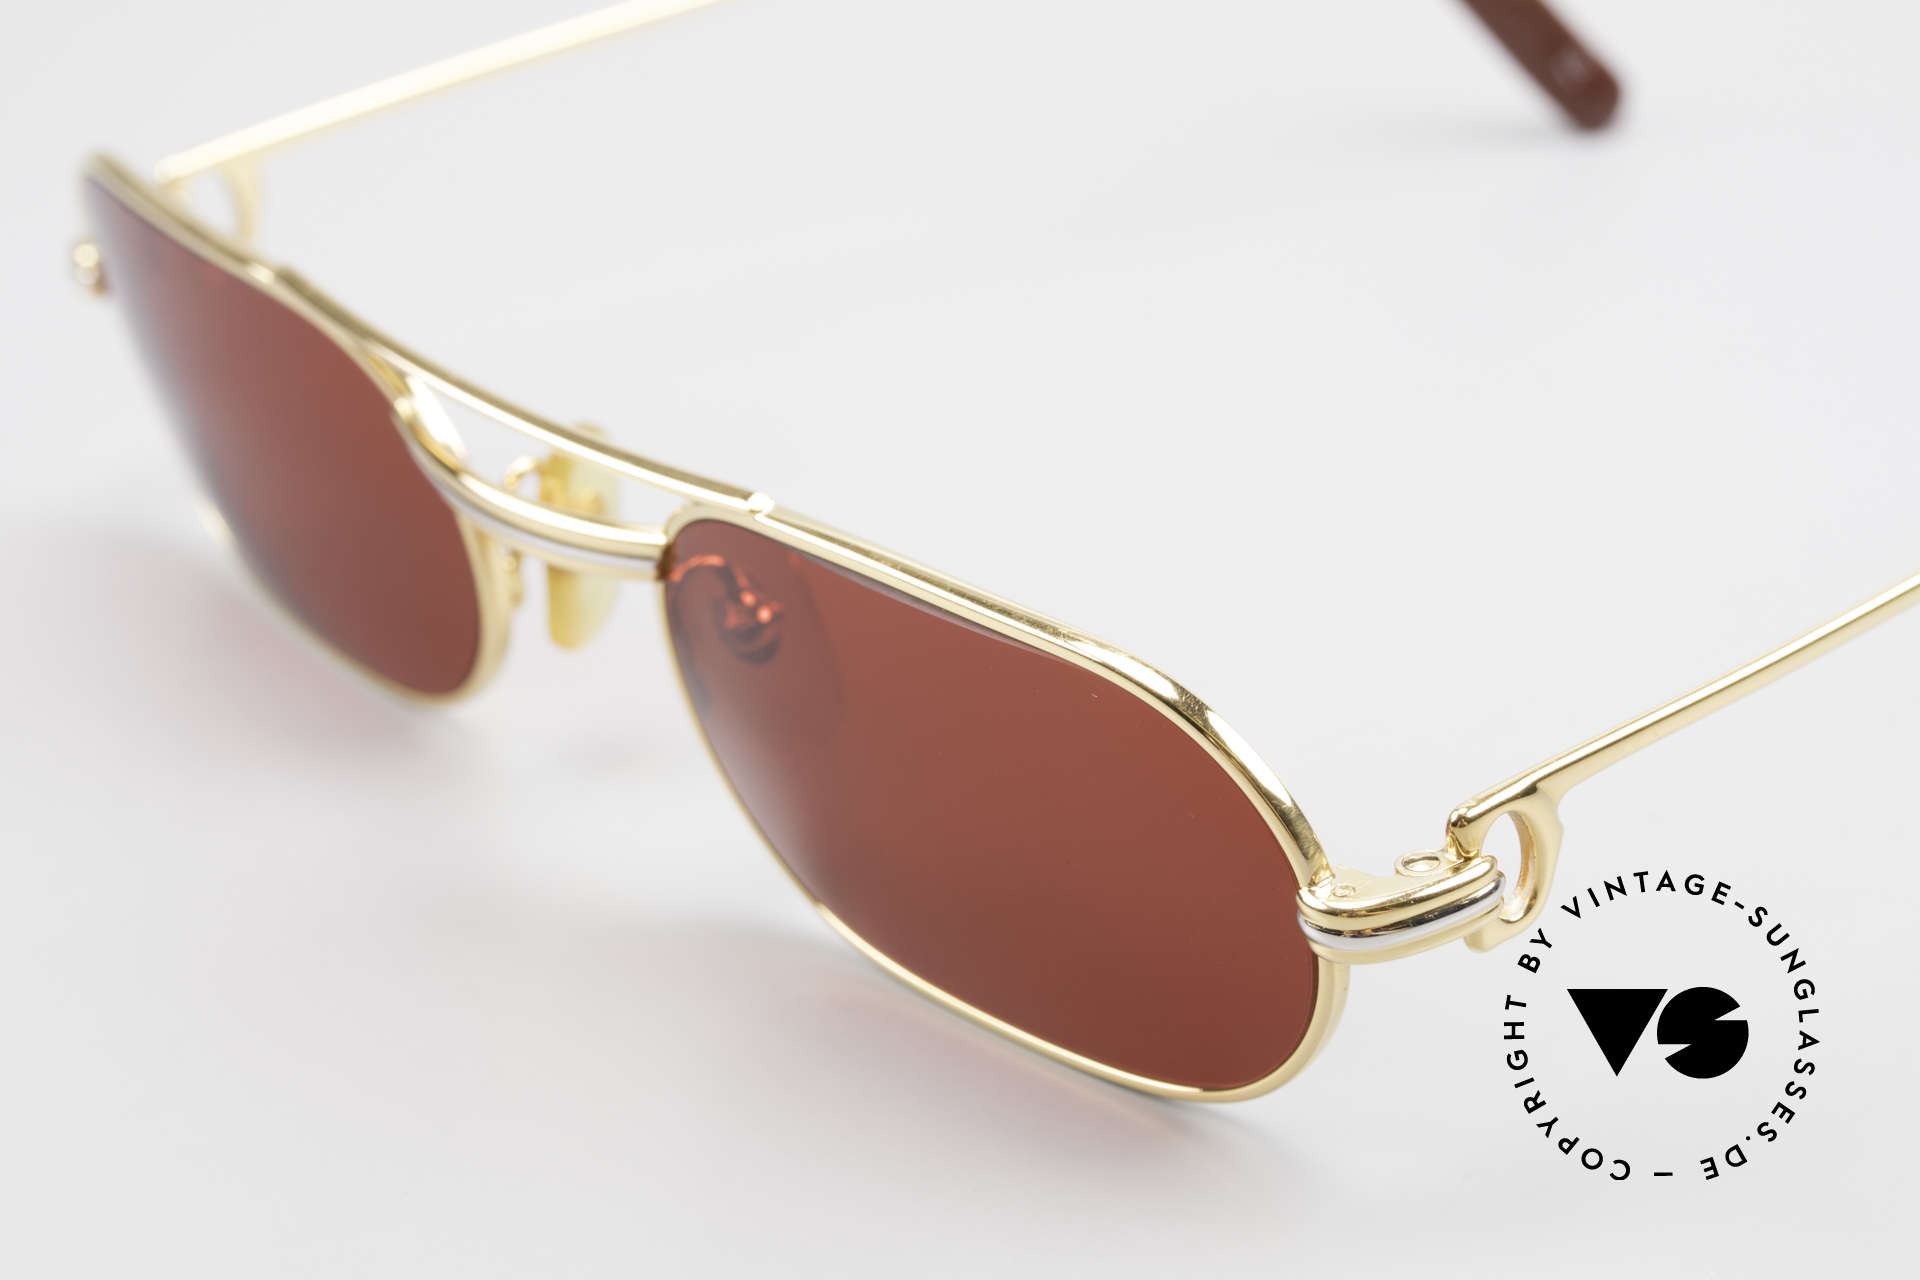 Cartier MUST LC - S 3D Red Luxury Sunglasses, with new CR39 plastic lenses in gaudy 3D-red; fancy, Made for Men and Women